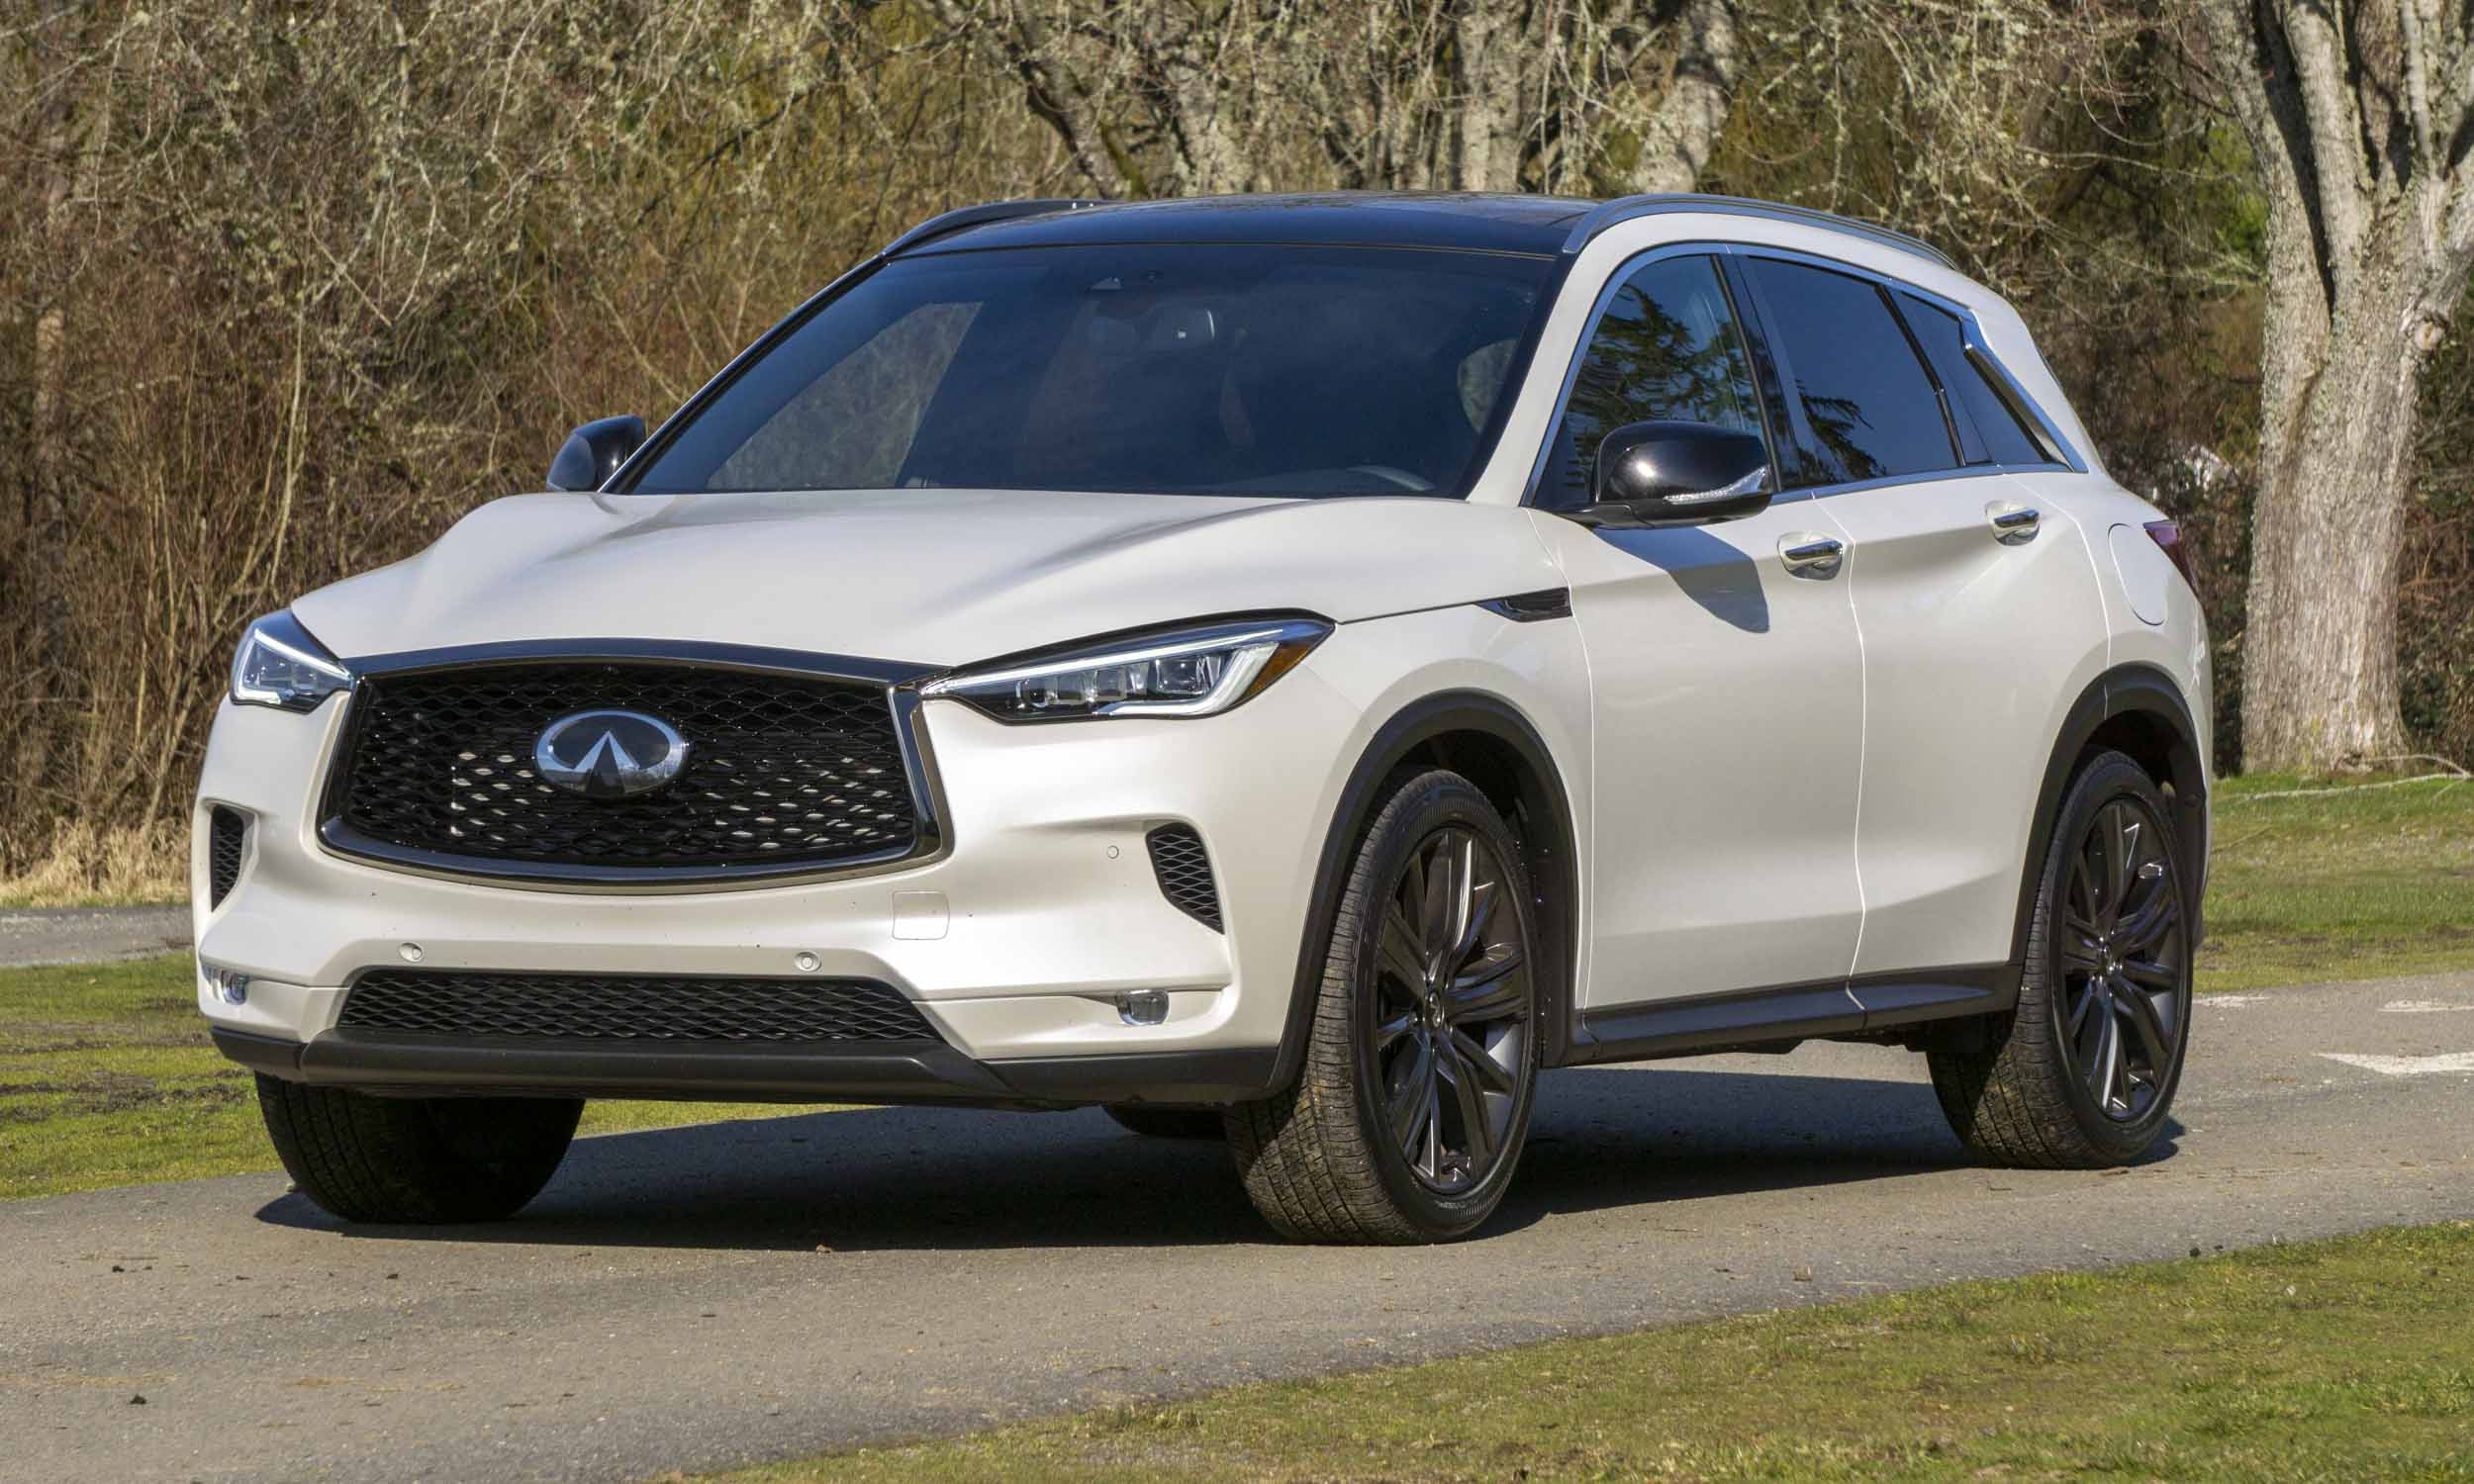 the best luxury suvs under $40k in 2020 - your automobile